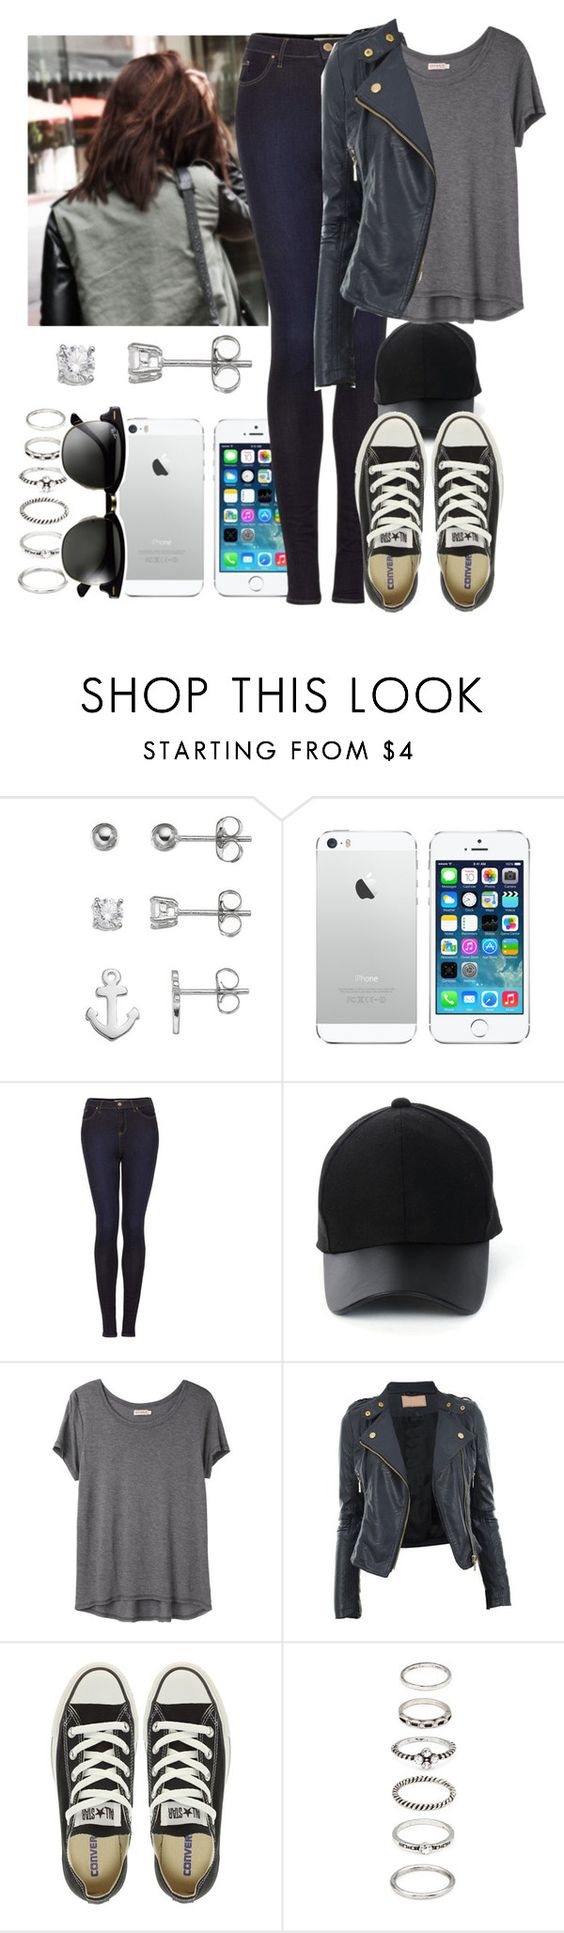 """Sem título #1216"" by esther-rosa ❤ liked on Polyvore featuring Topshop, Amiee Lynn, Organic by John Patrick, Converse, Forever 21 and Ray-Ban"